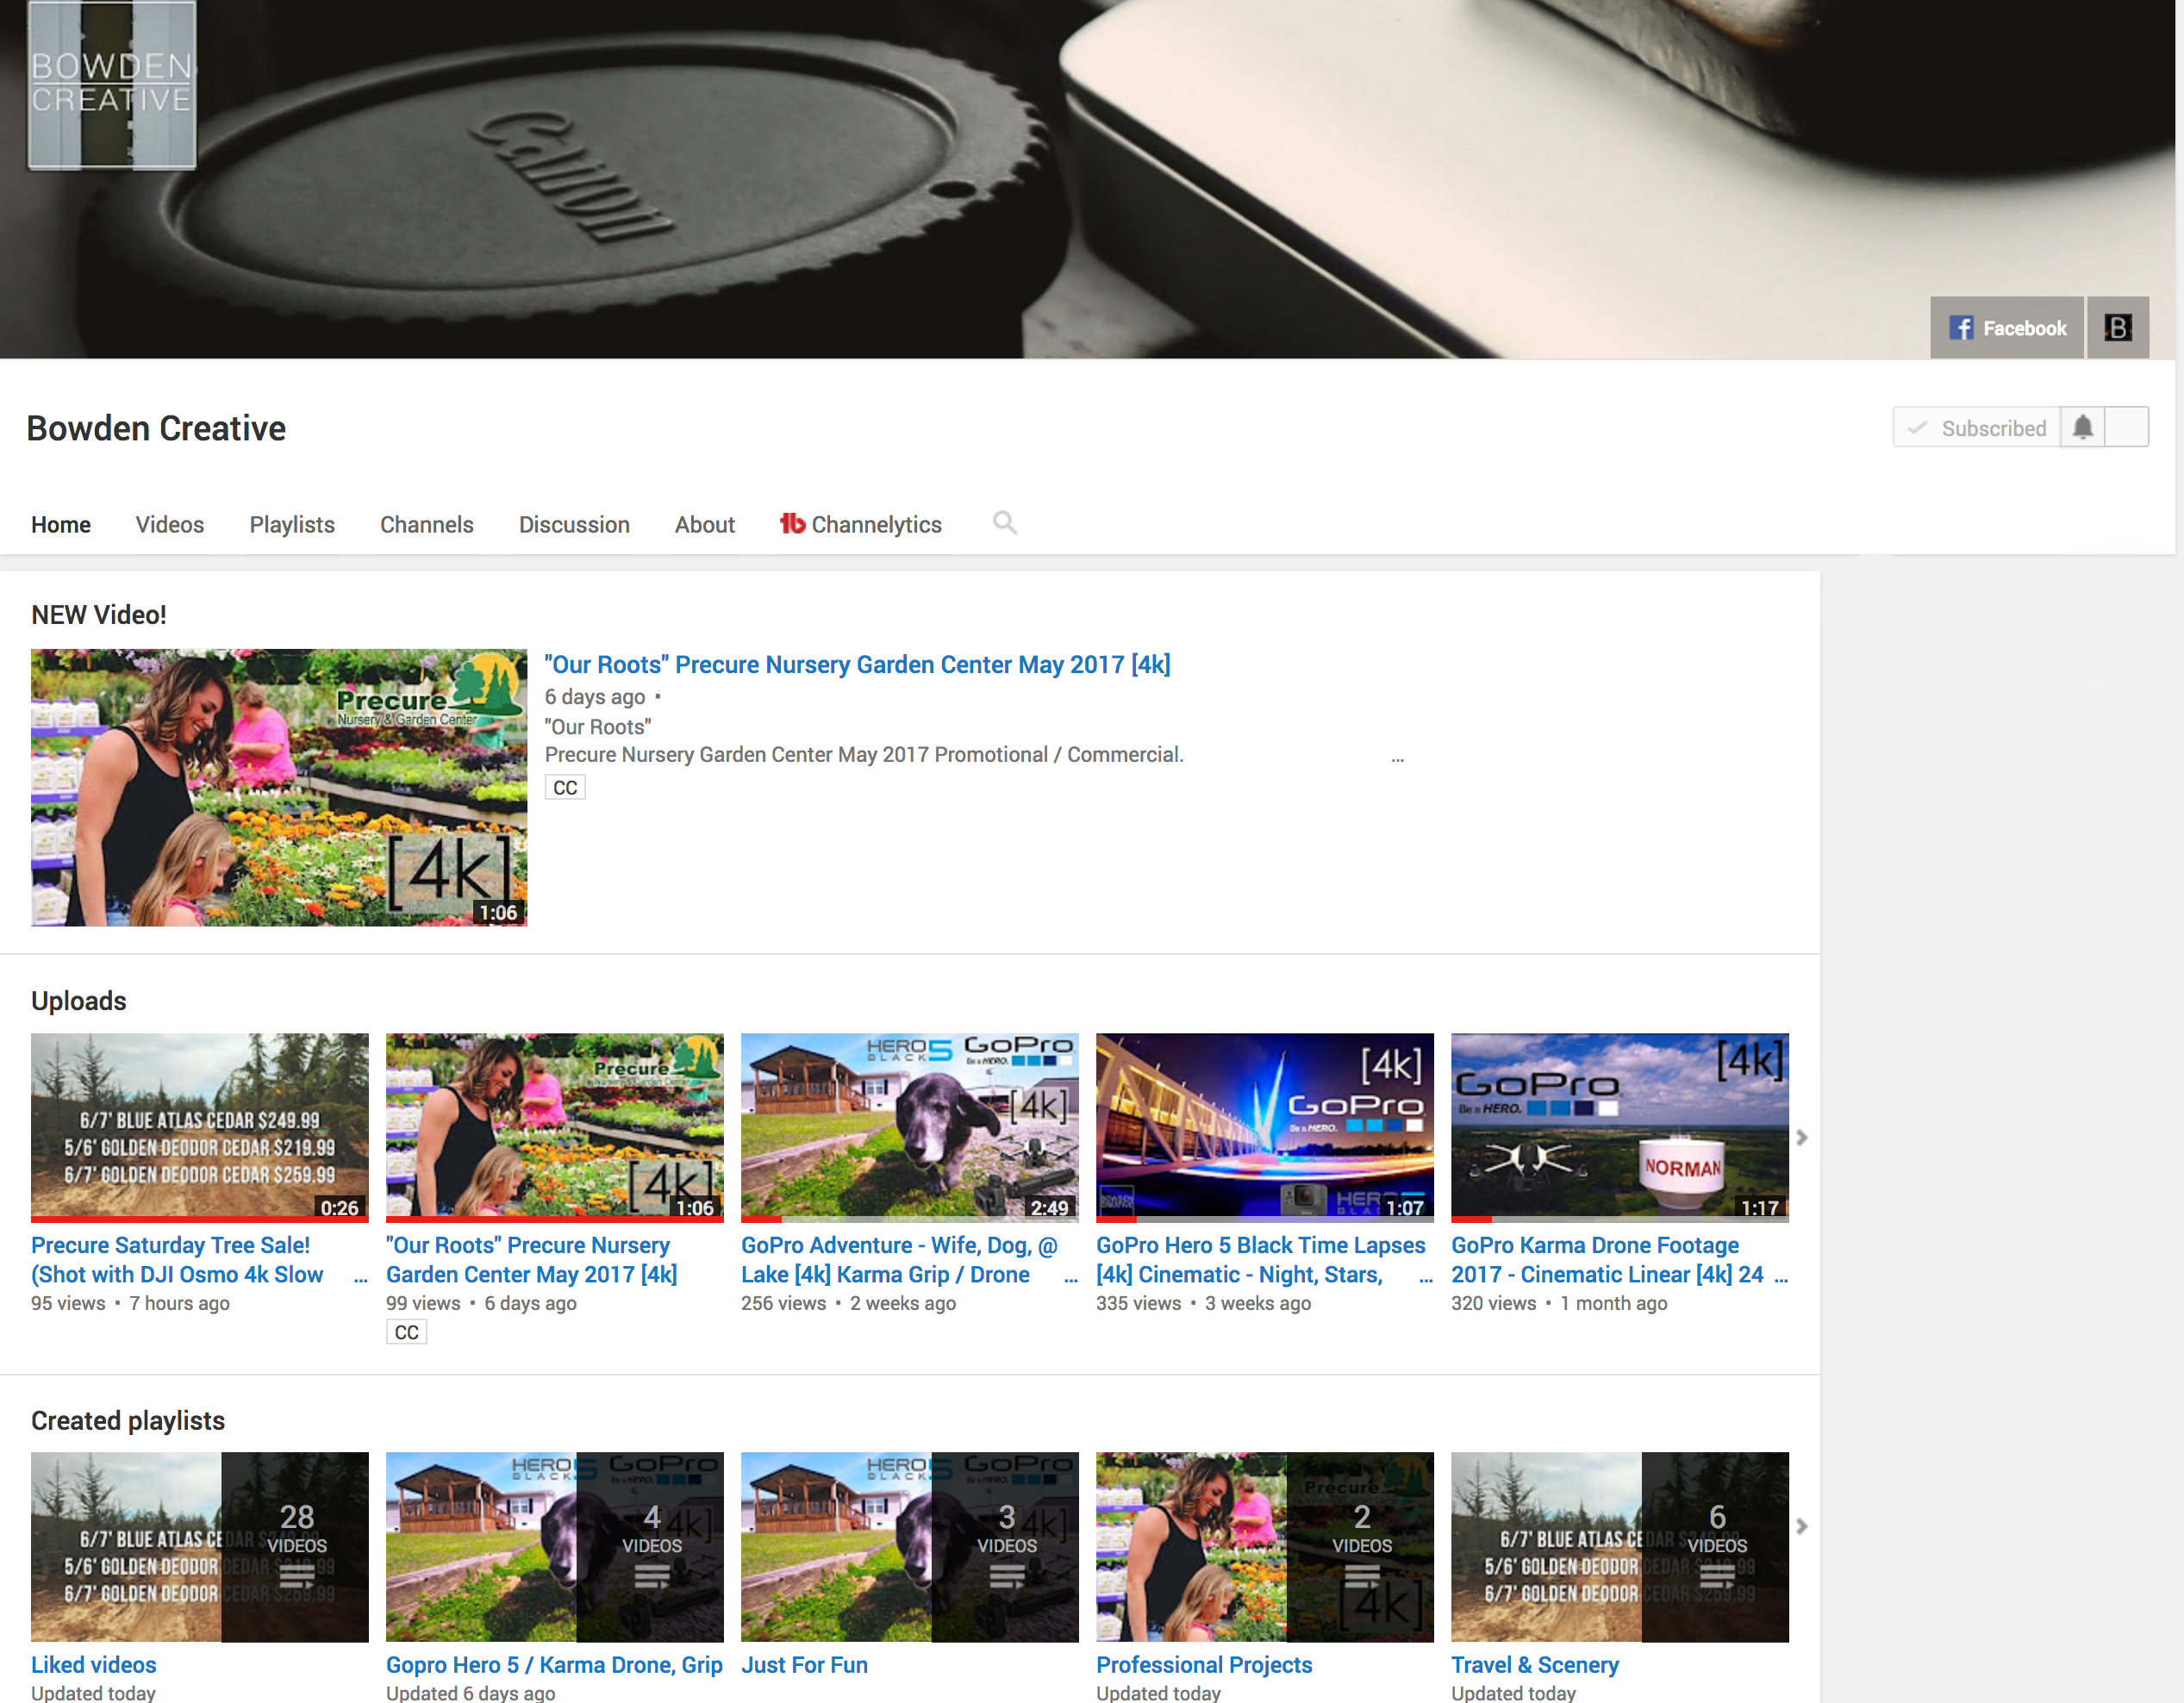 Bowden Creative Youtube Page subscribe